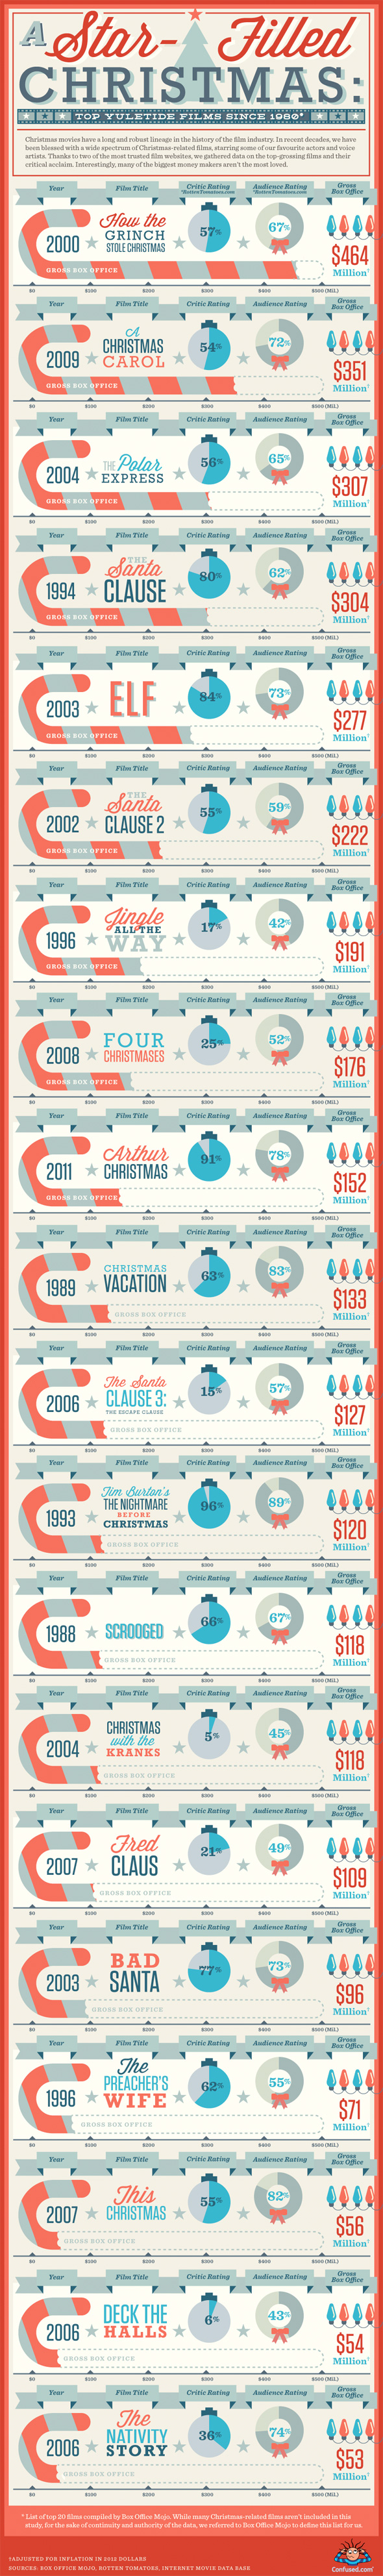 Christmas Movies Infographic